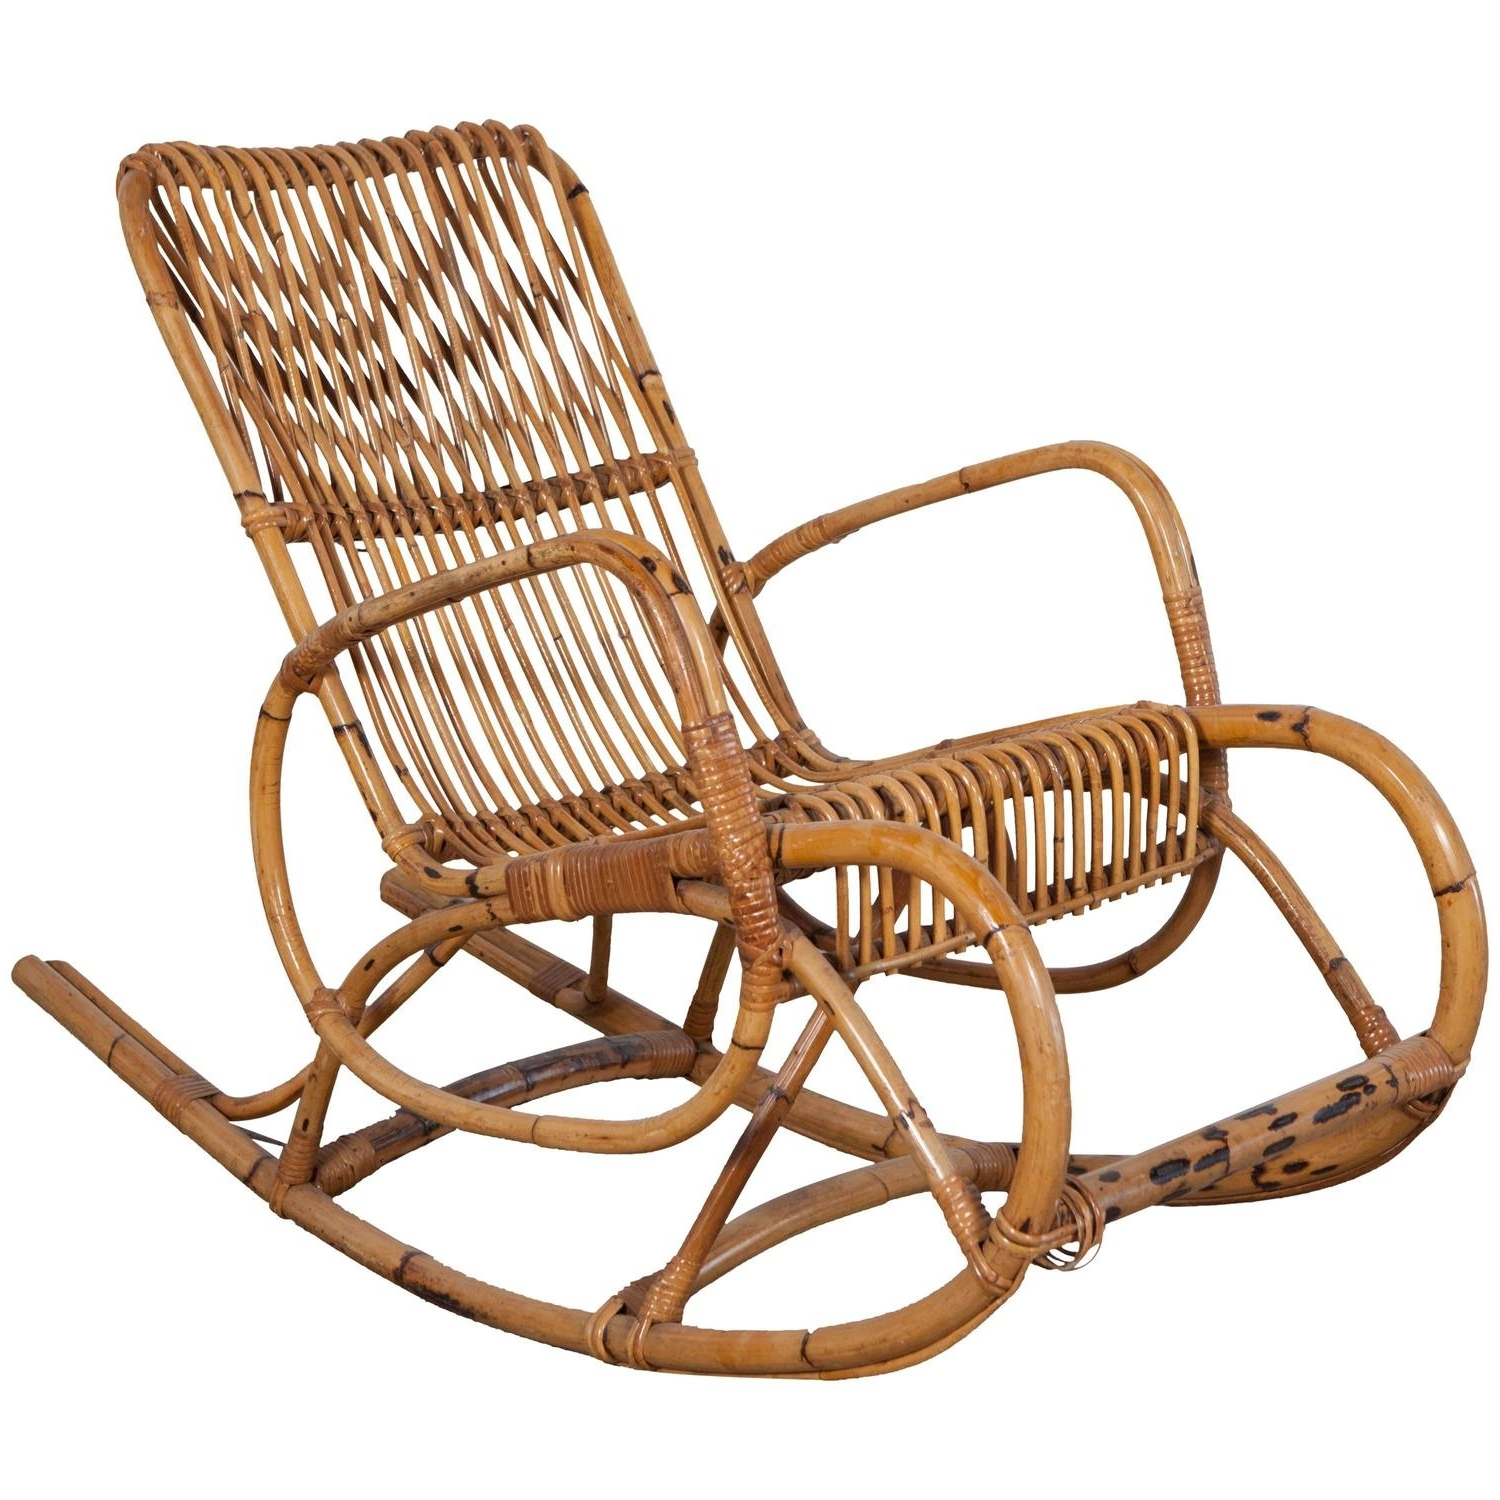 Trendy Vintage Italian Bamboo Rocking Chair With Square Arms Intended For Antique Rocking Chairs (View 3 of 15)